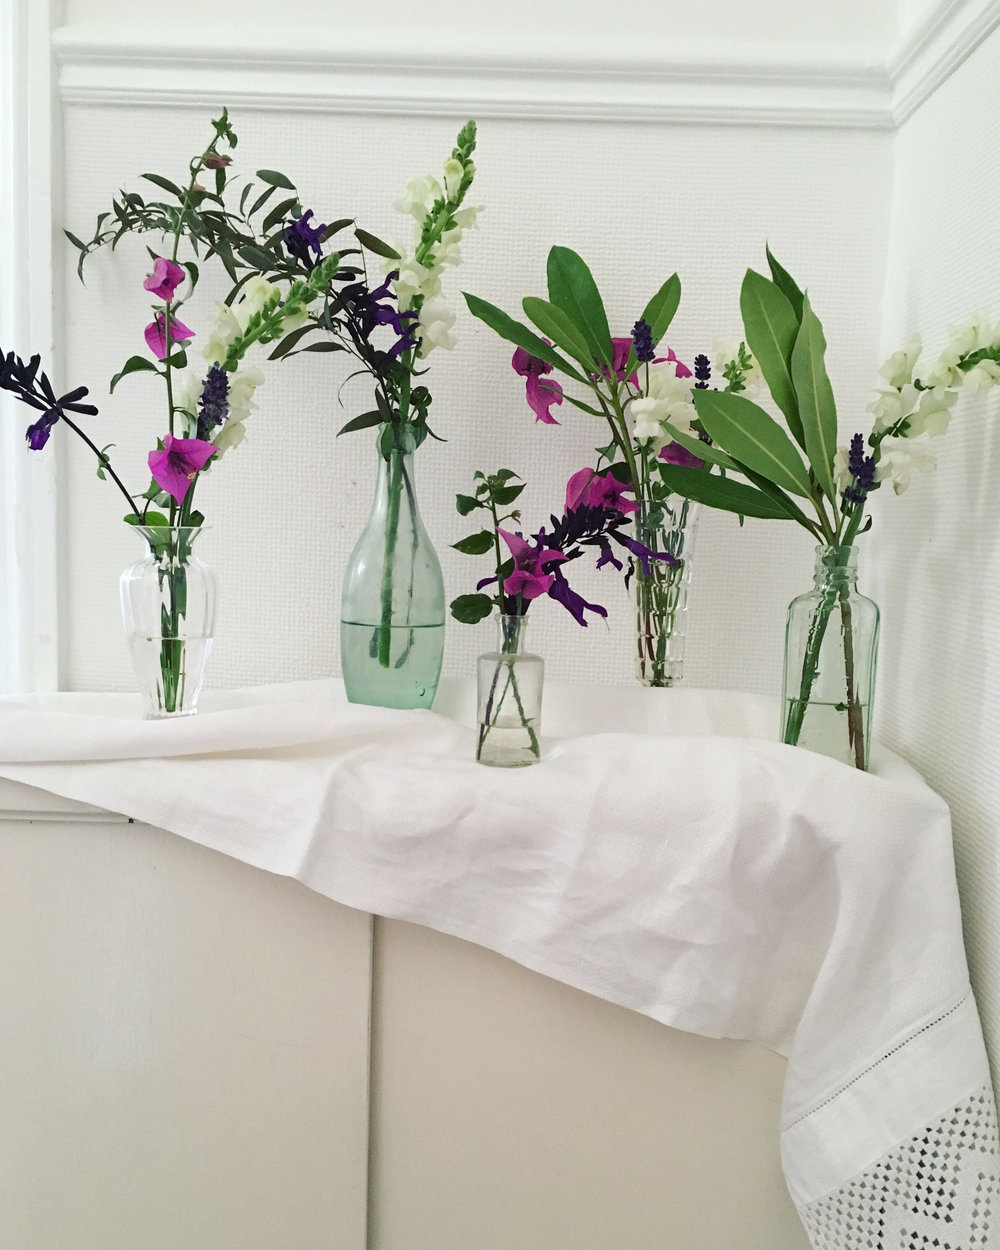 Vintage Amy Blog-Styling Tips-Vintage Medicine Bottles and Vases to Hire